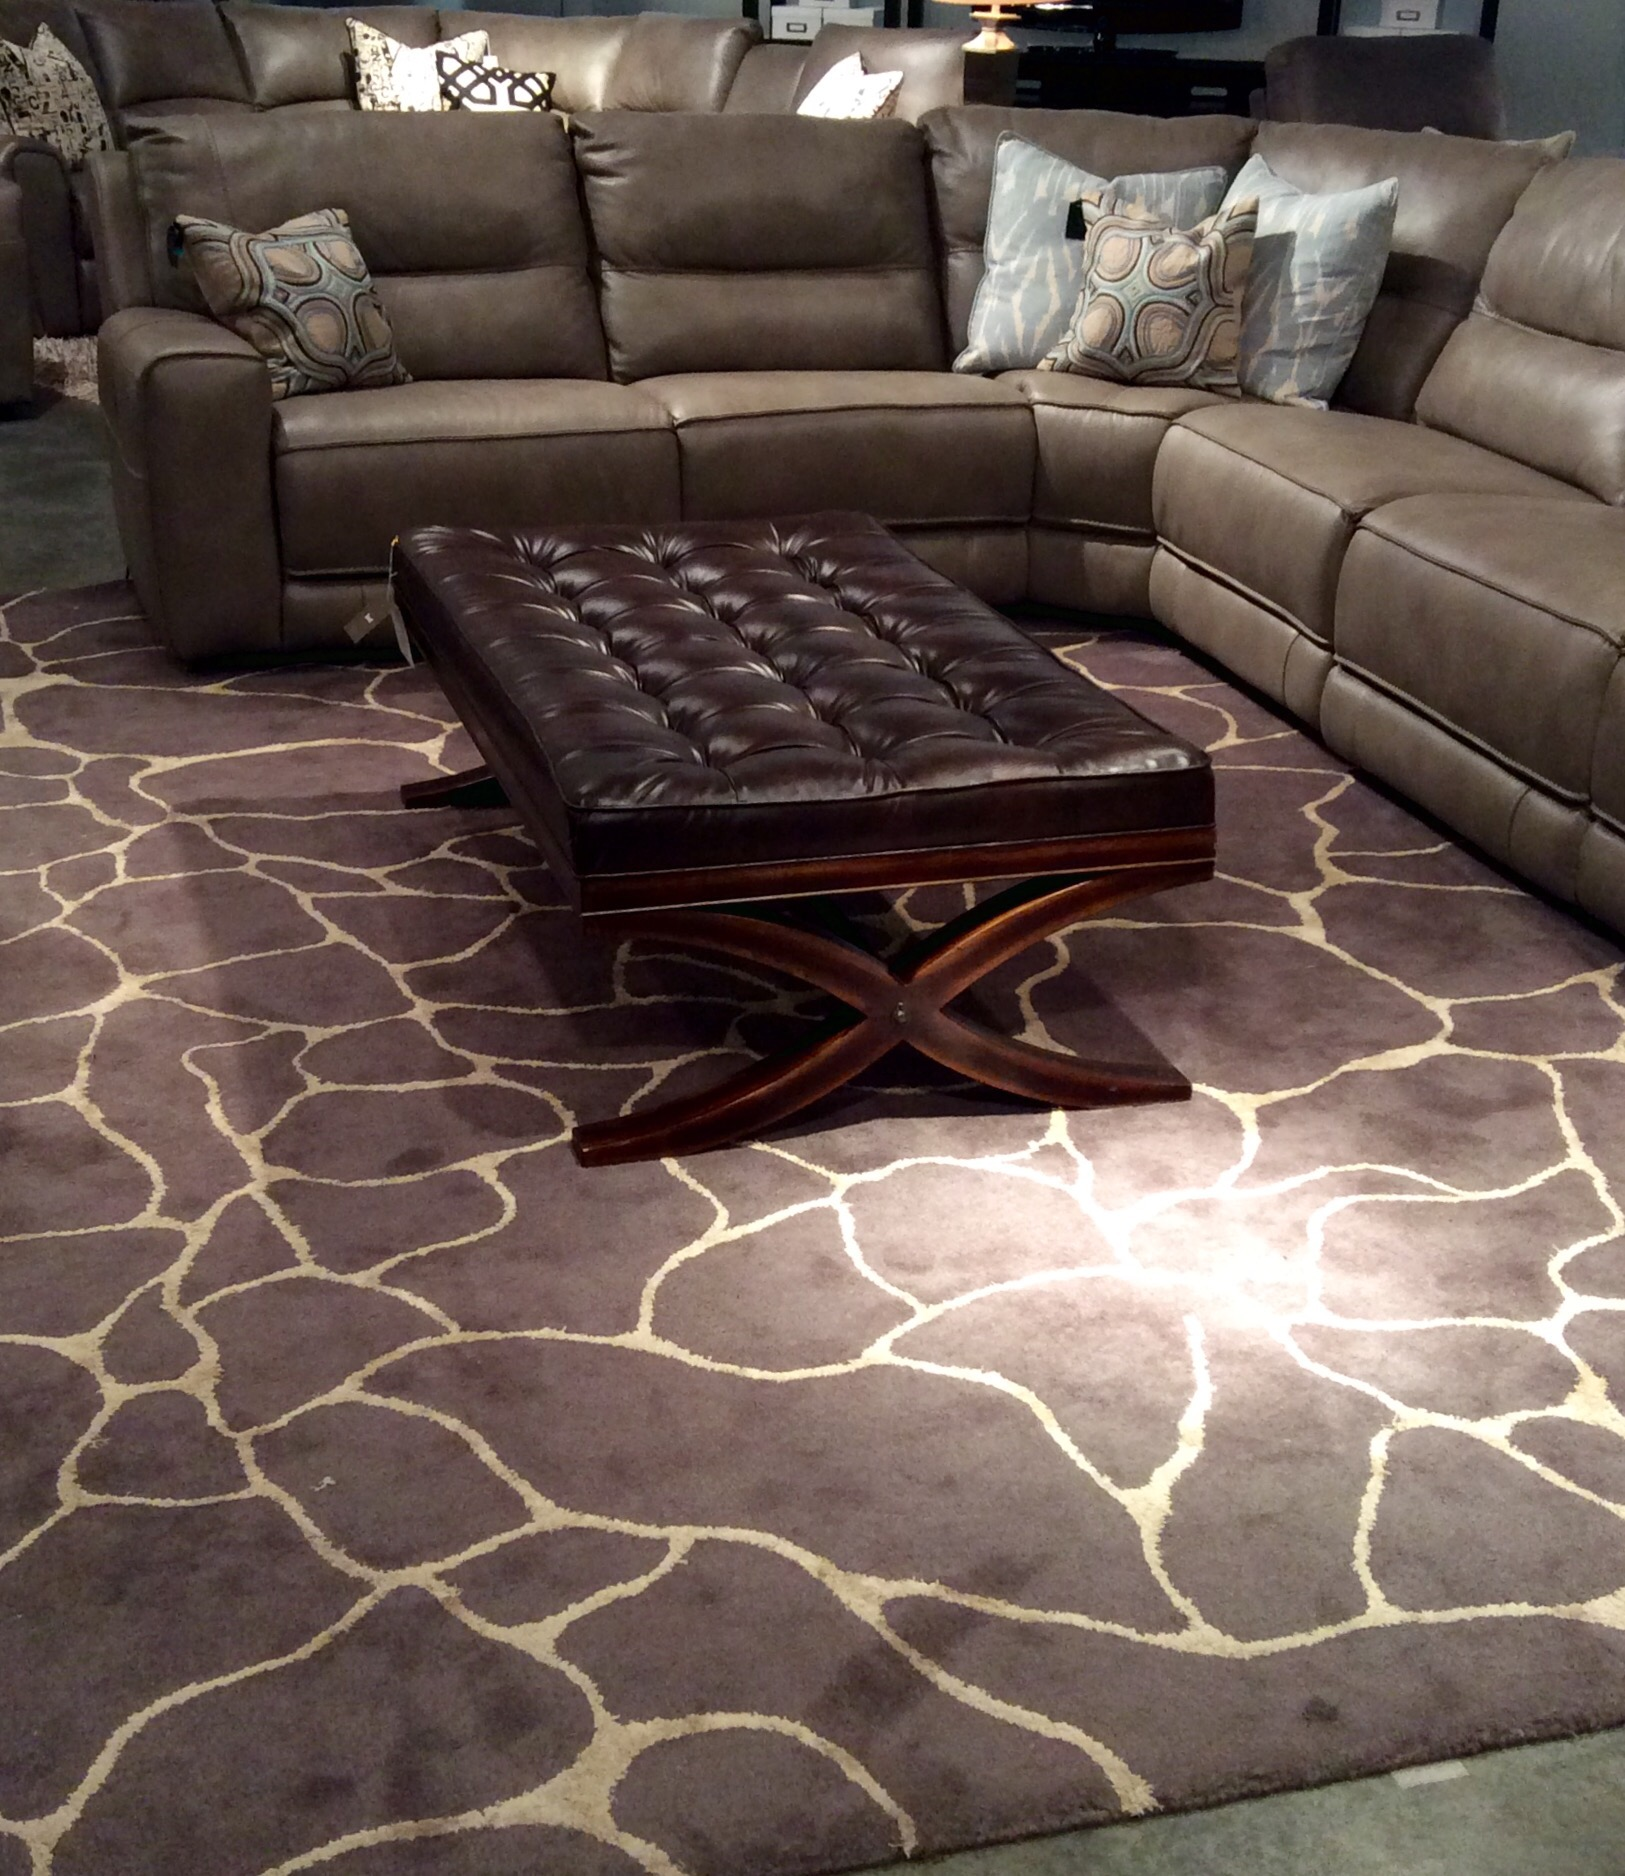 New From Bassett Furniture Corp 48108 Silhouette From The Sphinx